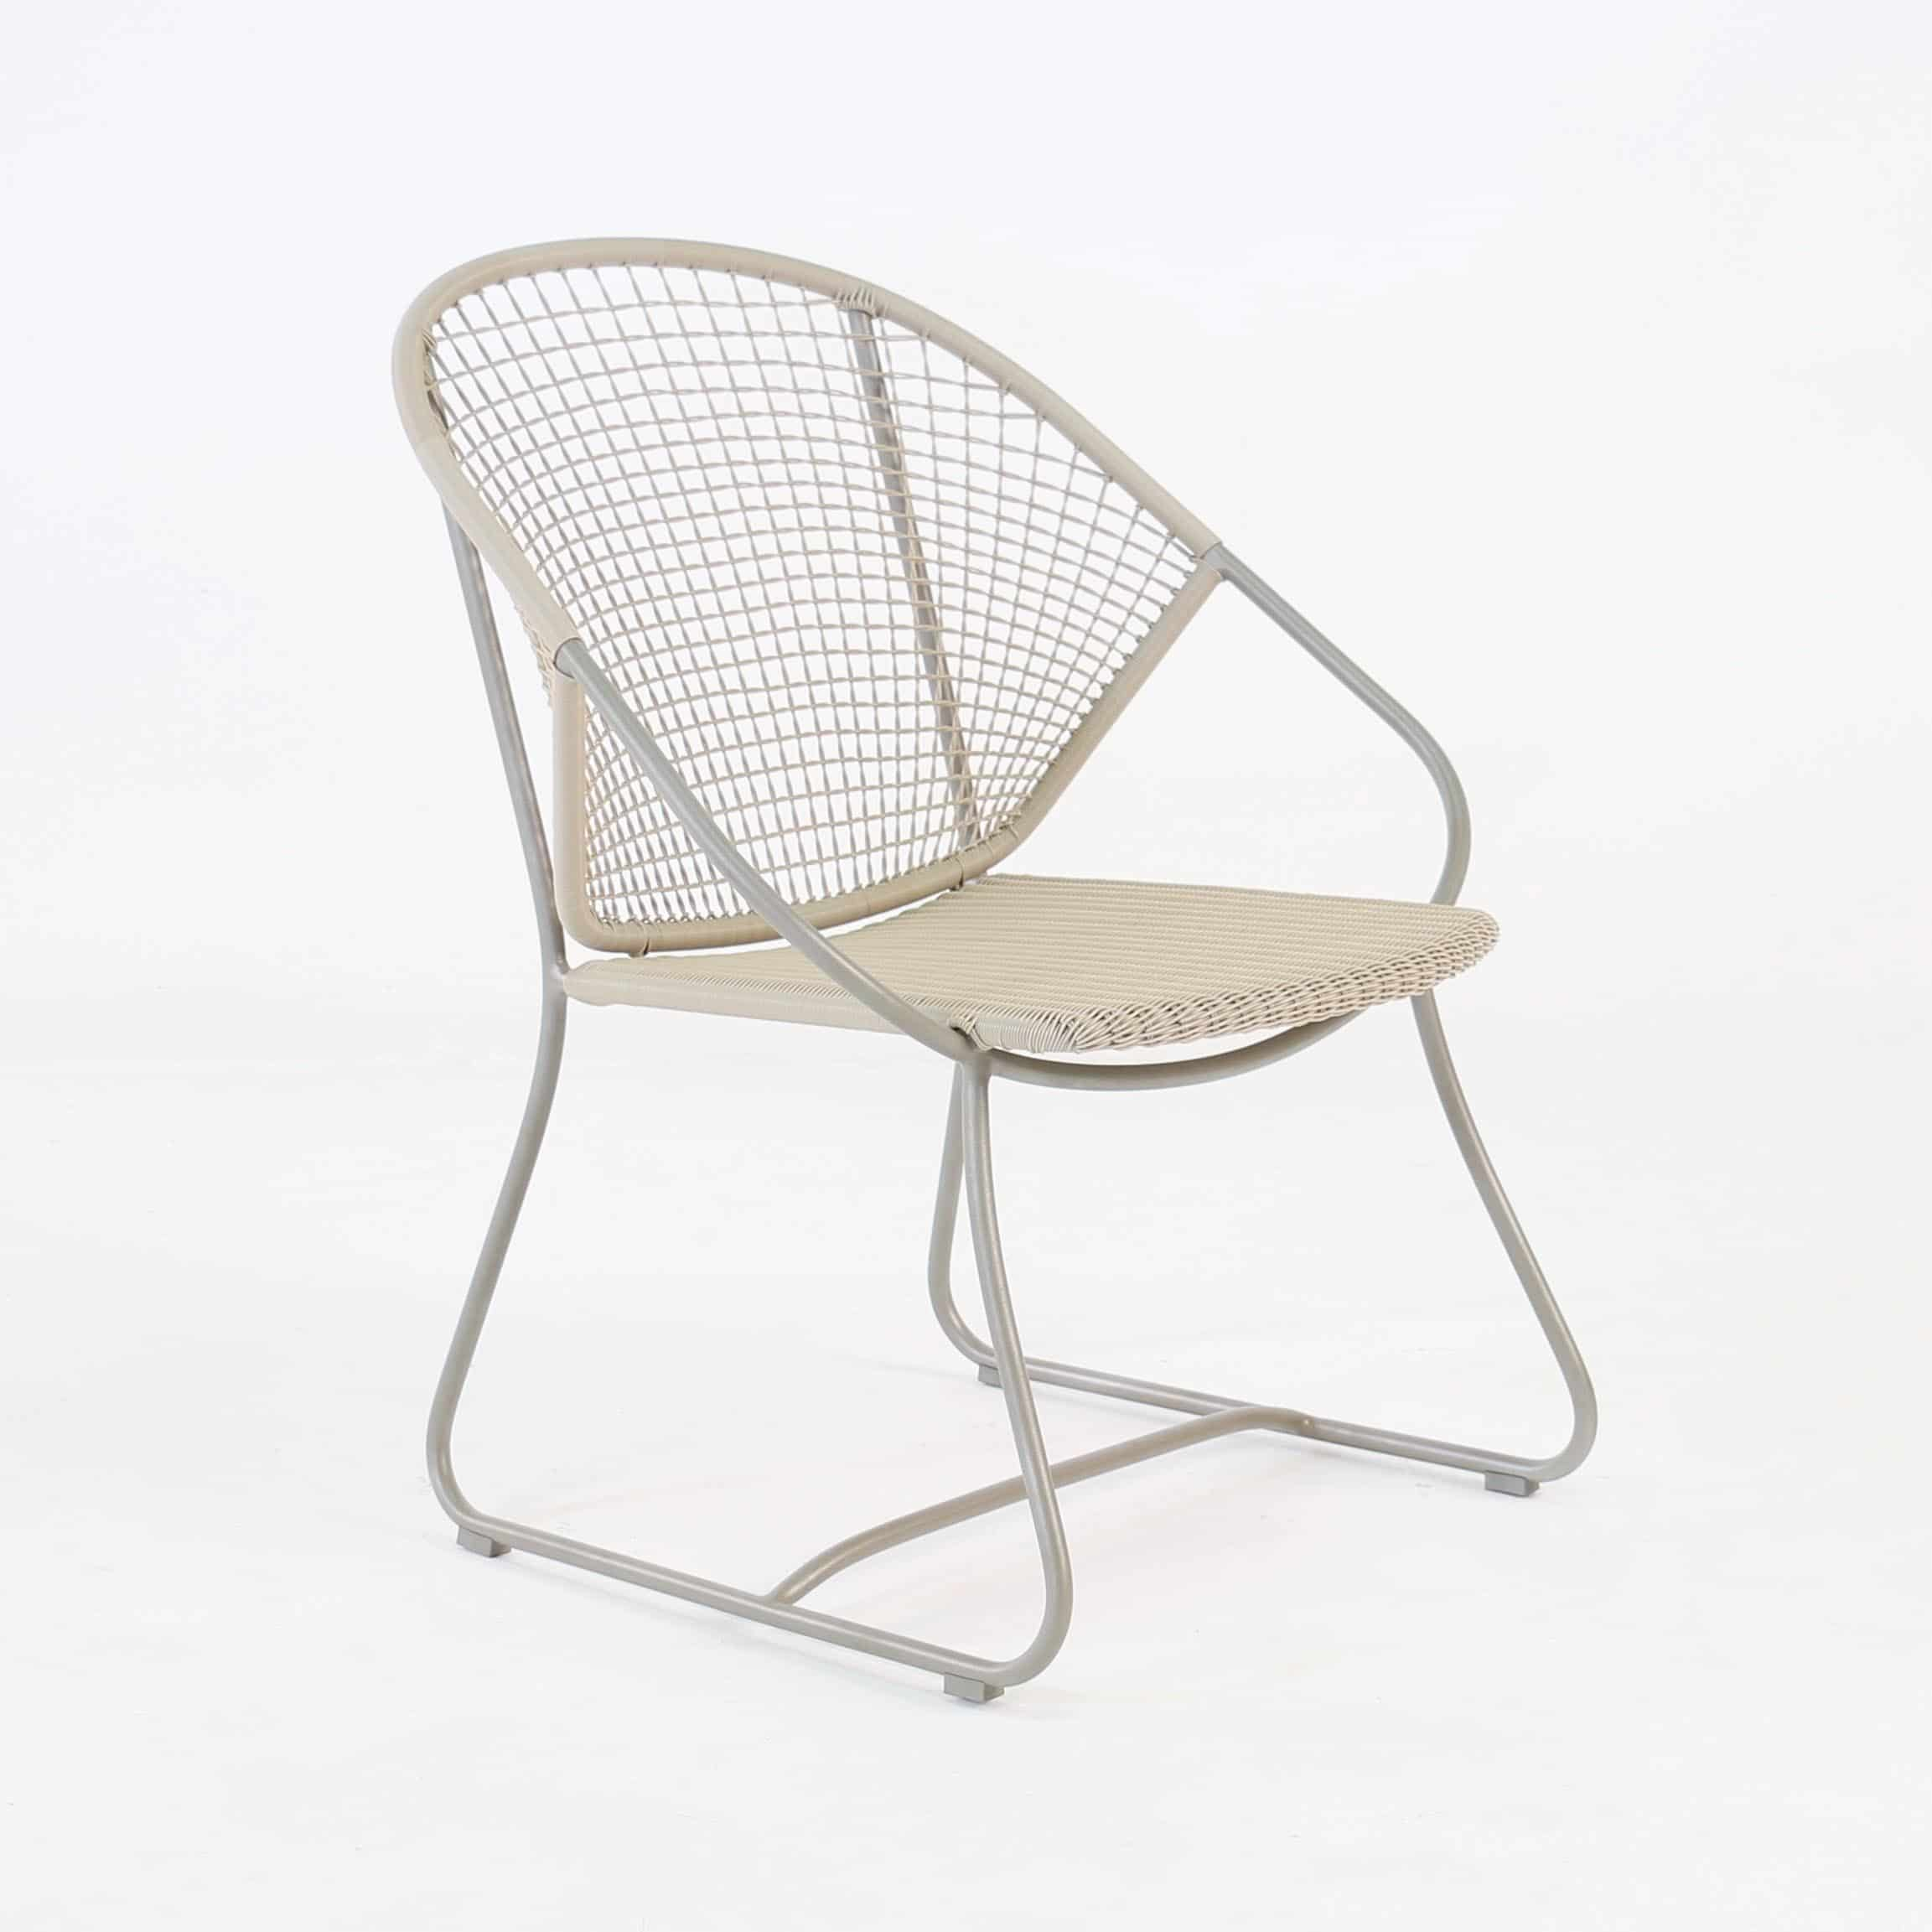 Outdoor Wicker Relaxing Arm Chair angled view